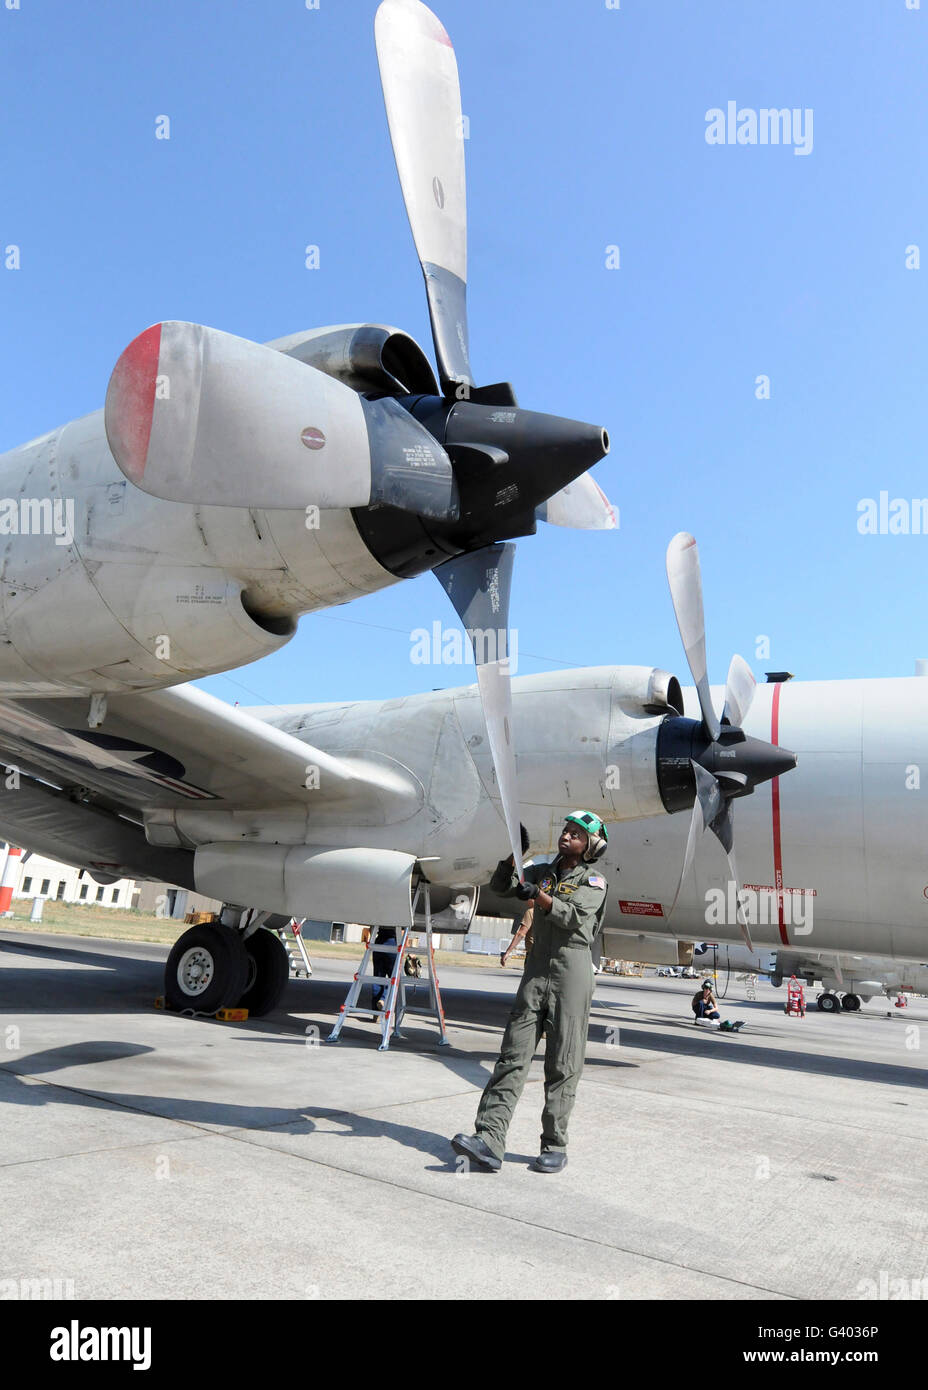 Naval Aircrewman inspects the propellers on a P-3C Orion. - Stock Image